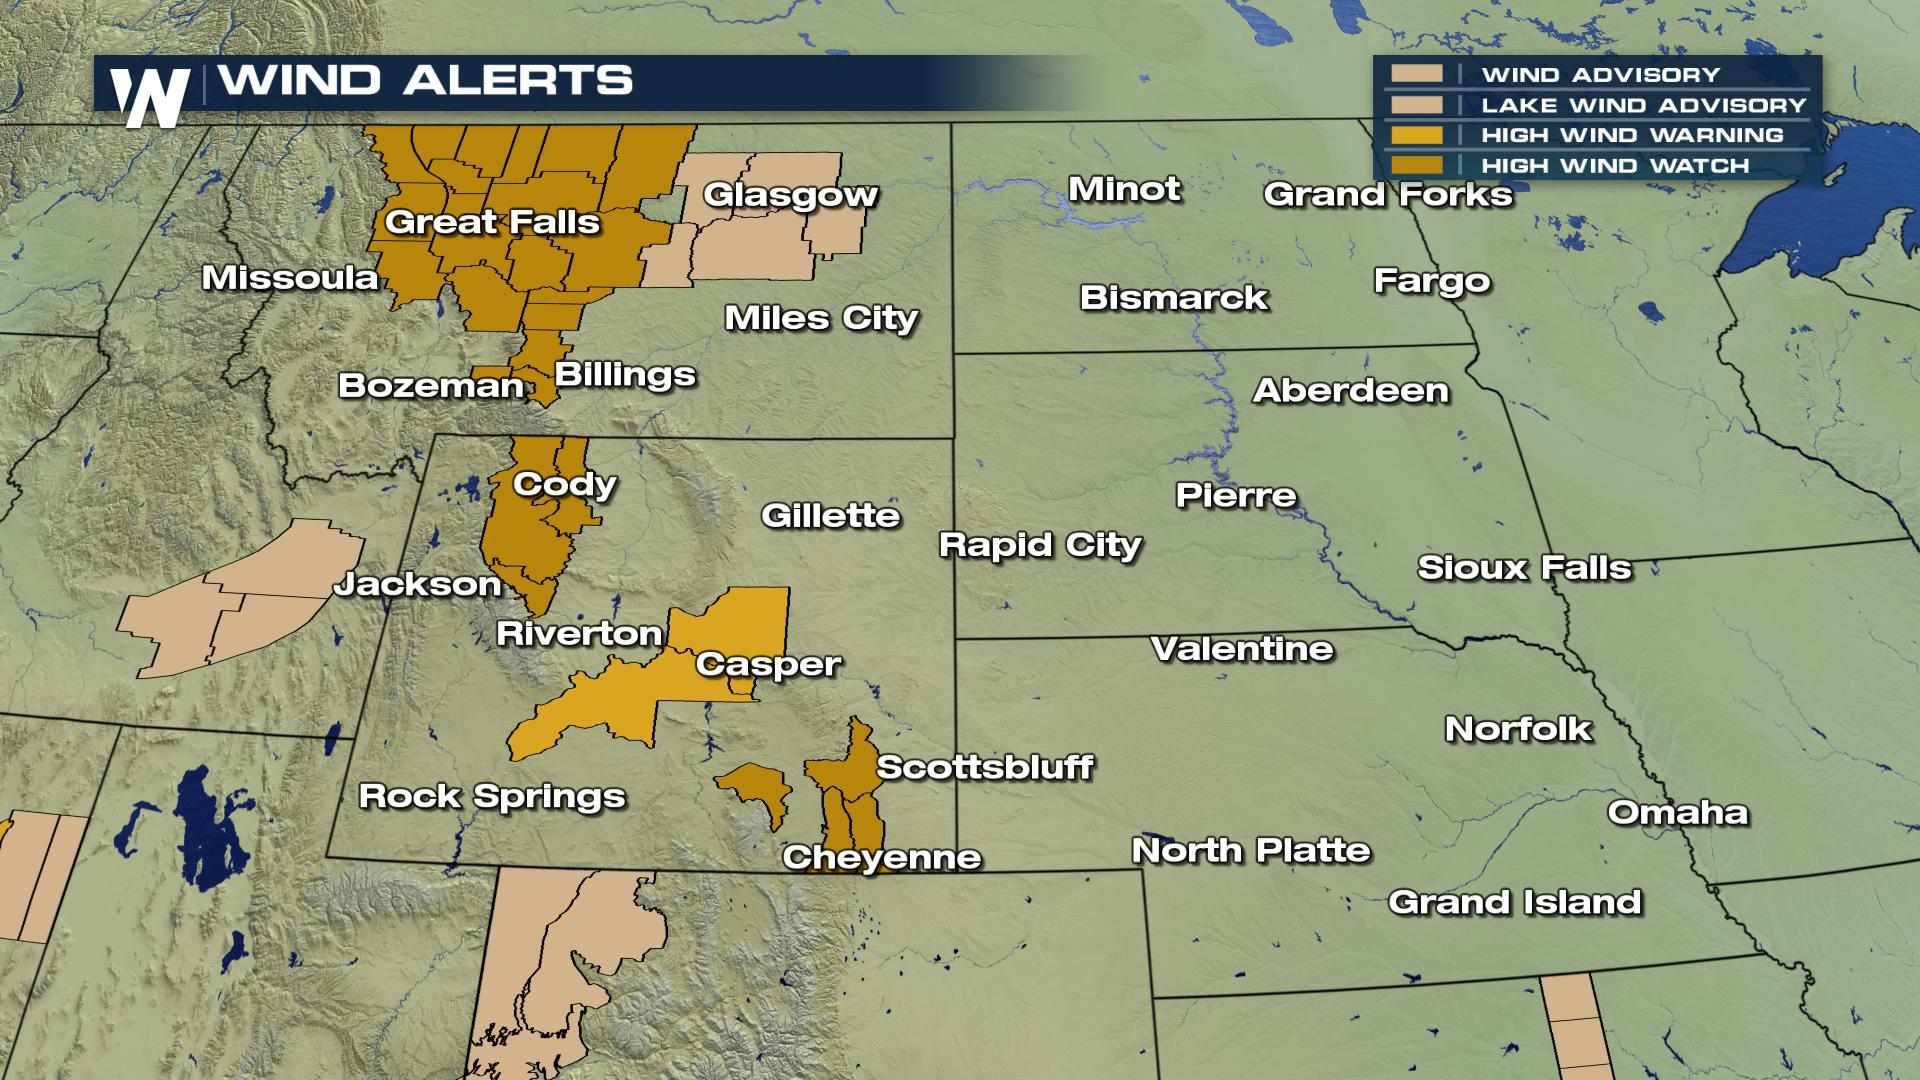 Now into the Weekend: Fire and Wind Concerns Across High Plains